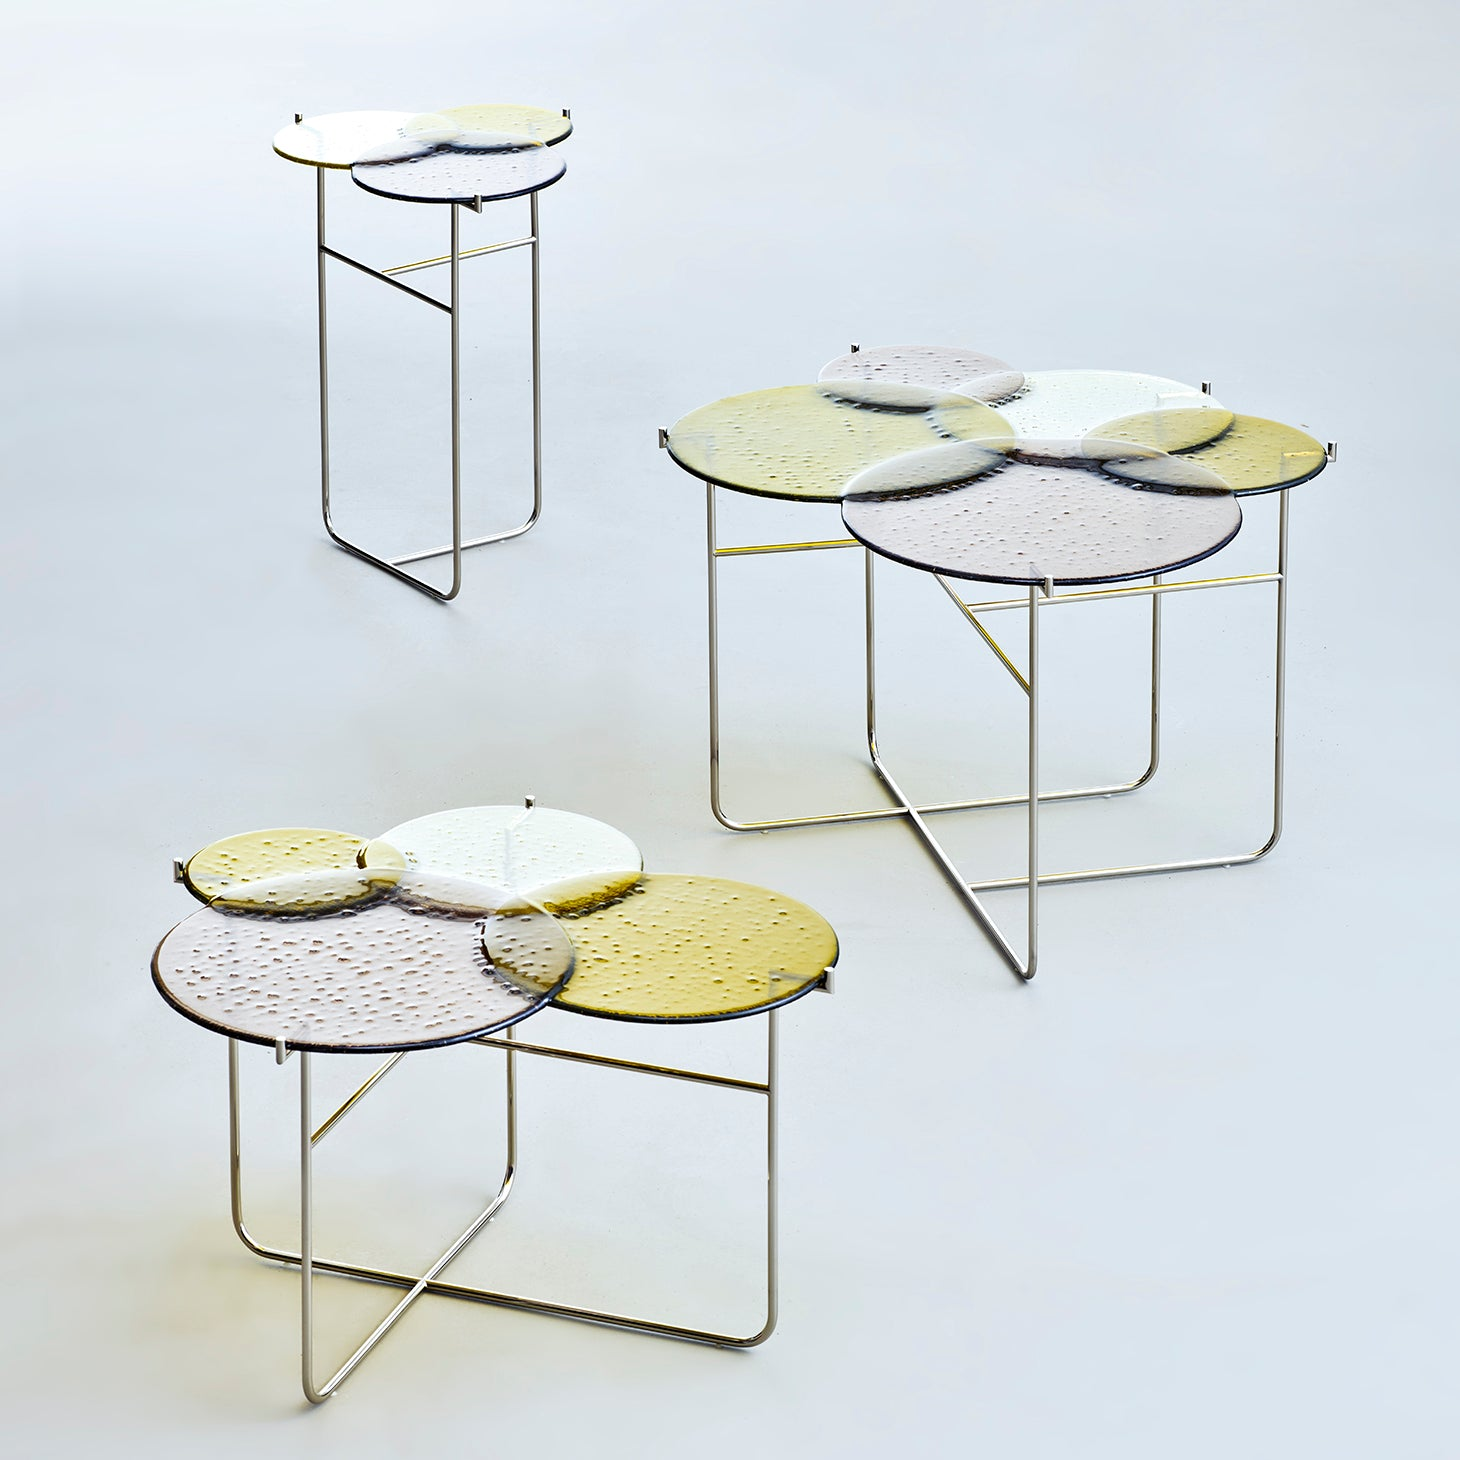 Pastille Tables Sebastian Herkner Designer Furniture Sku: 806-230-10007